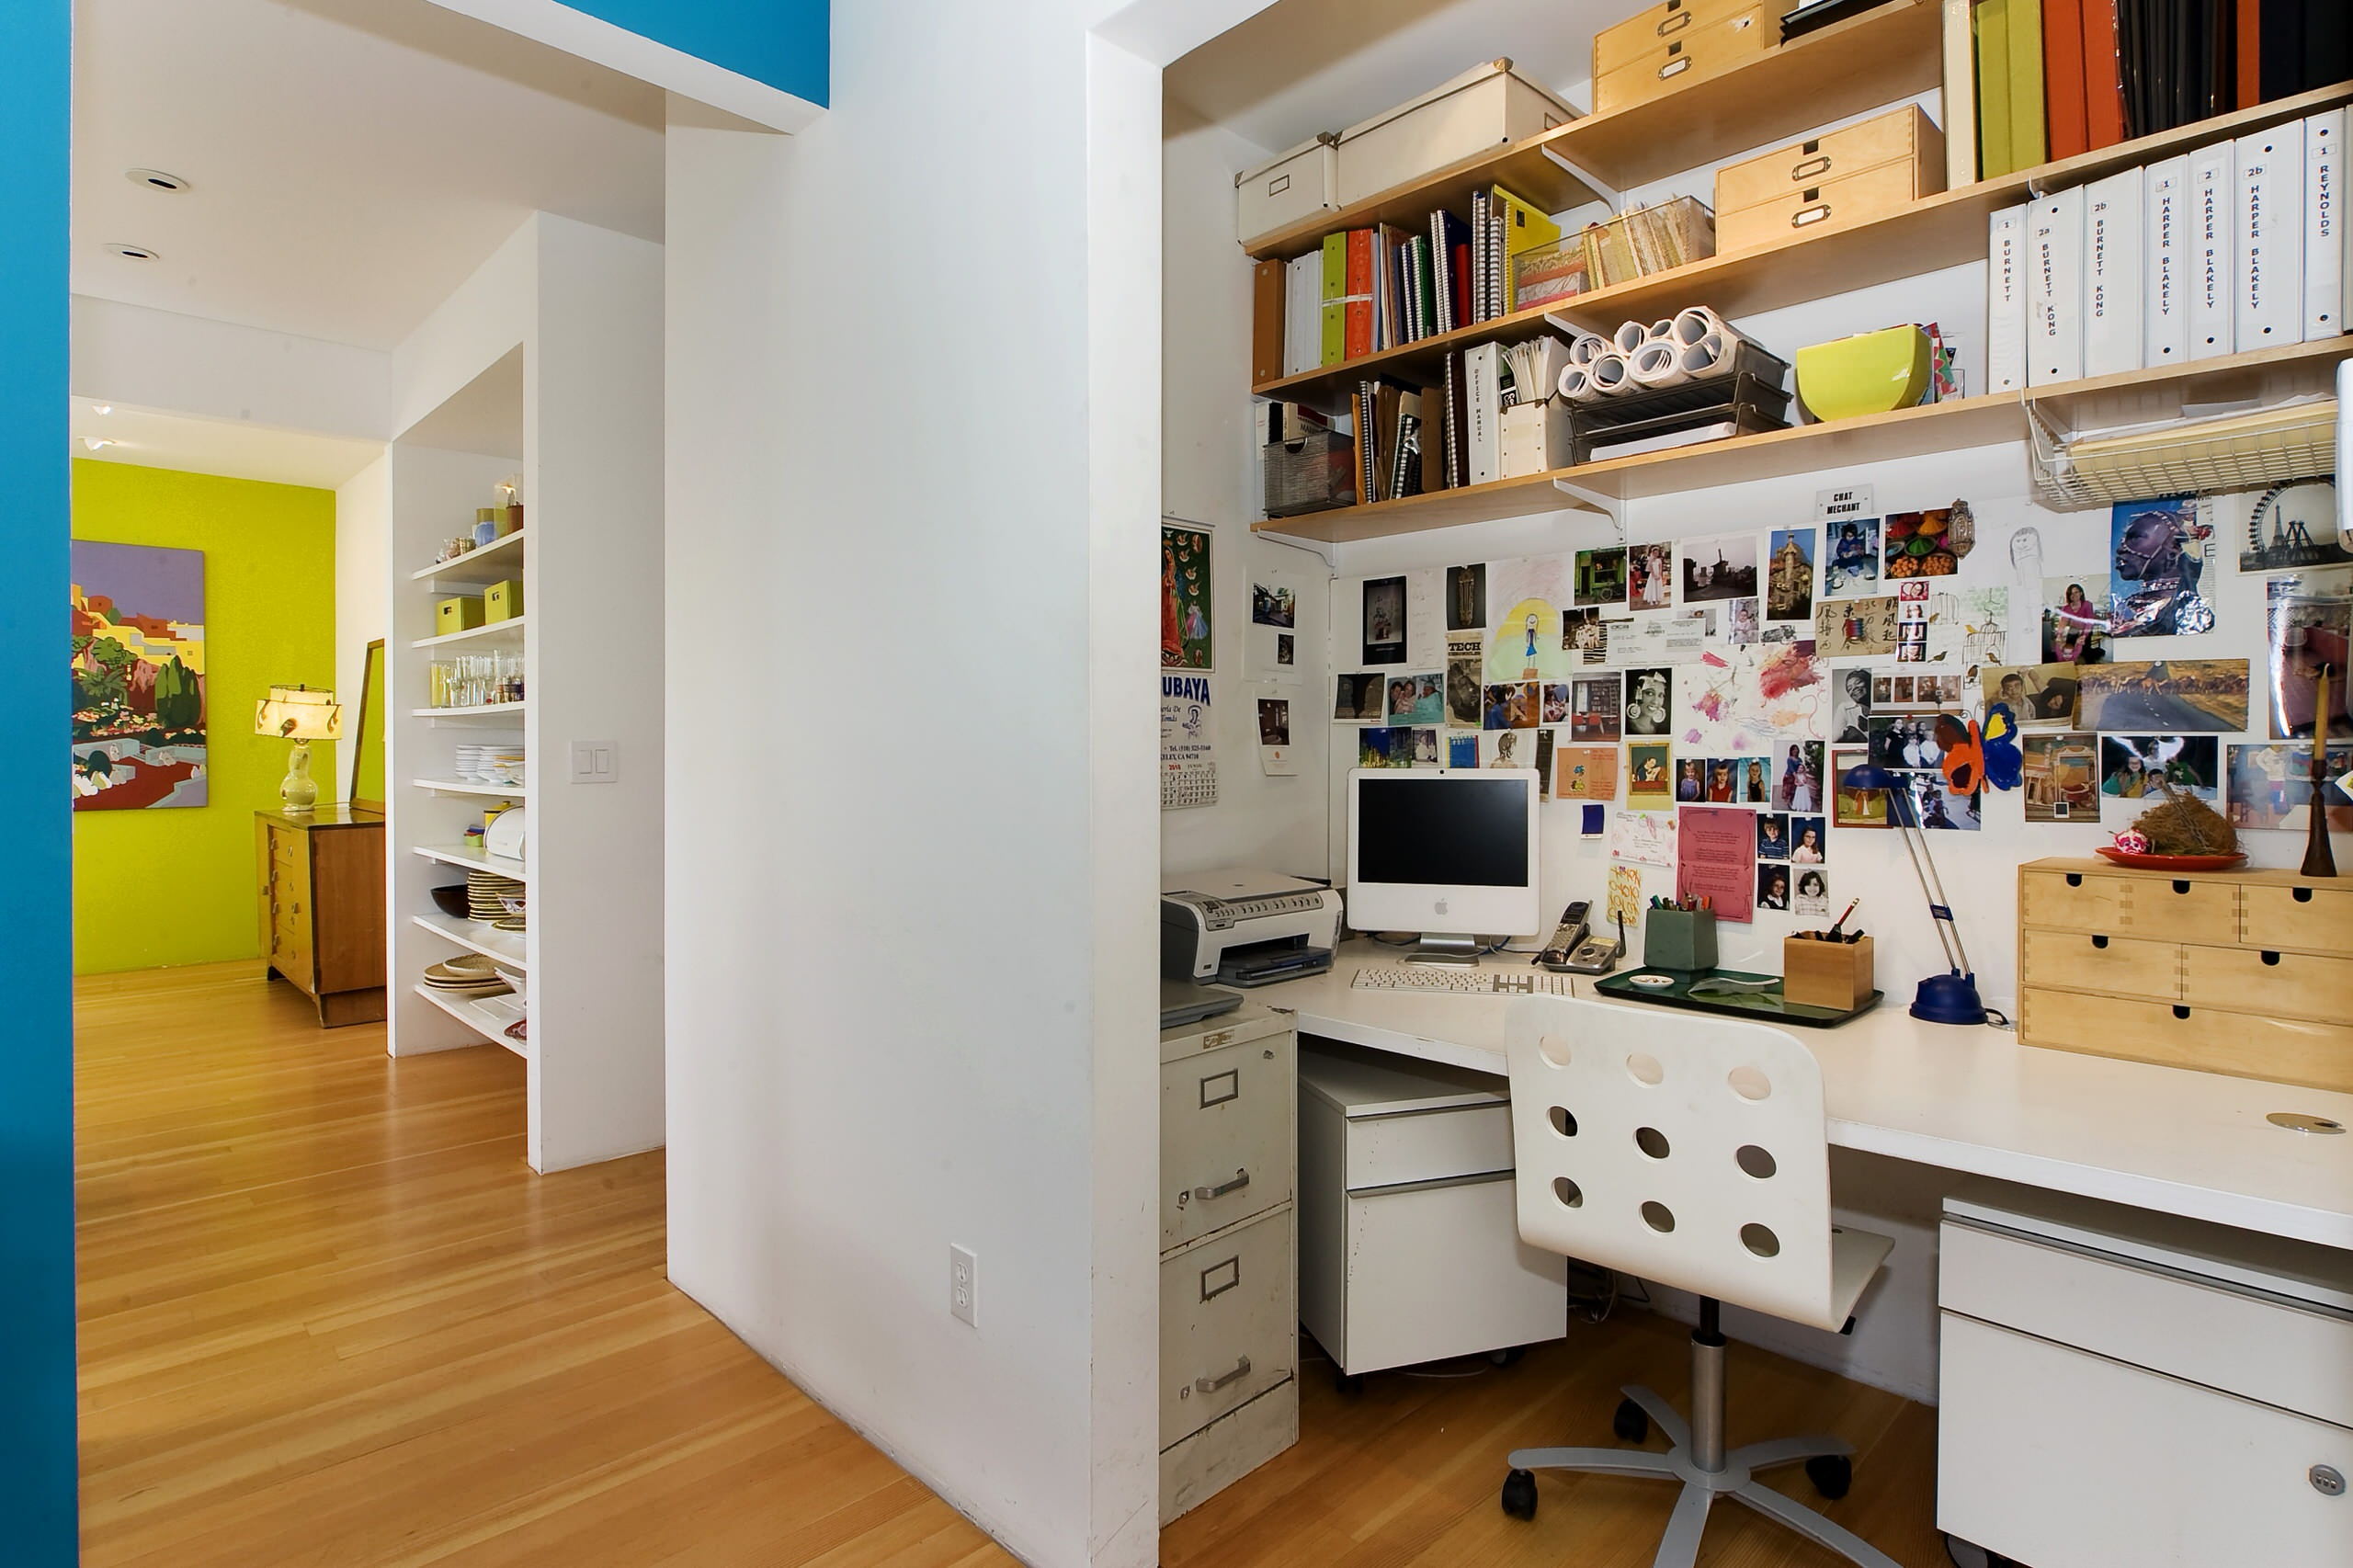 Turn closet into office Contemporary Home Office built in desk shelving storage white desk wood flooring